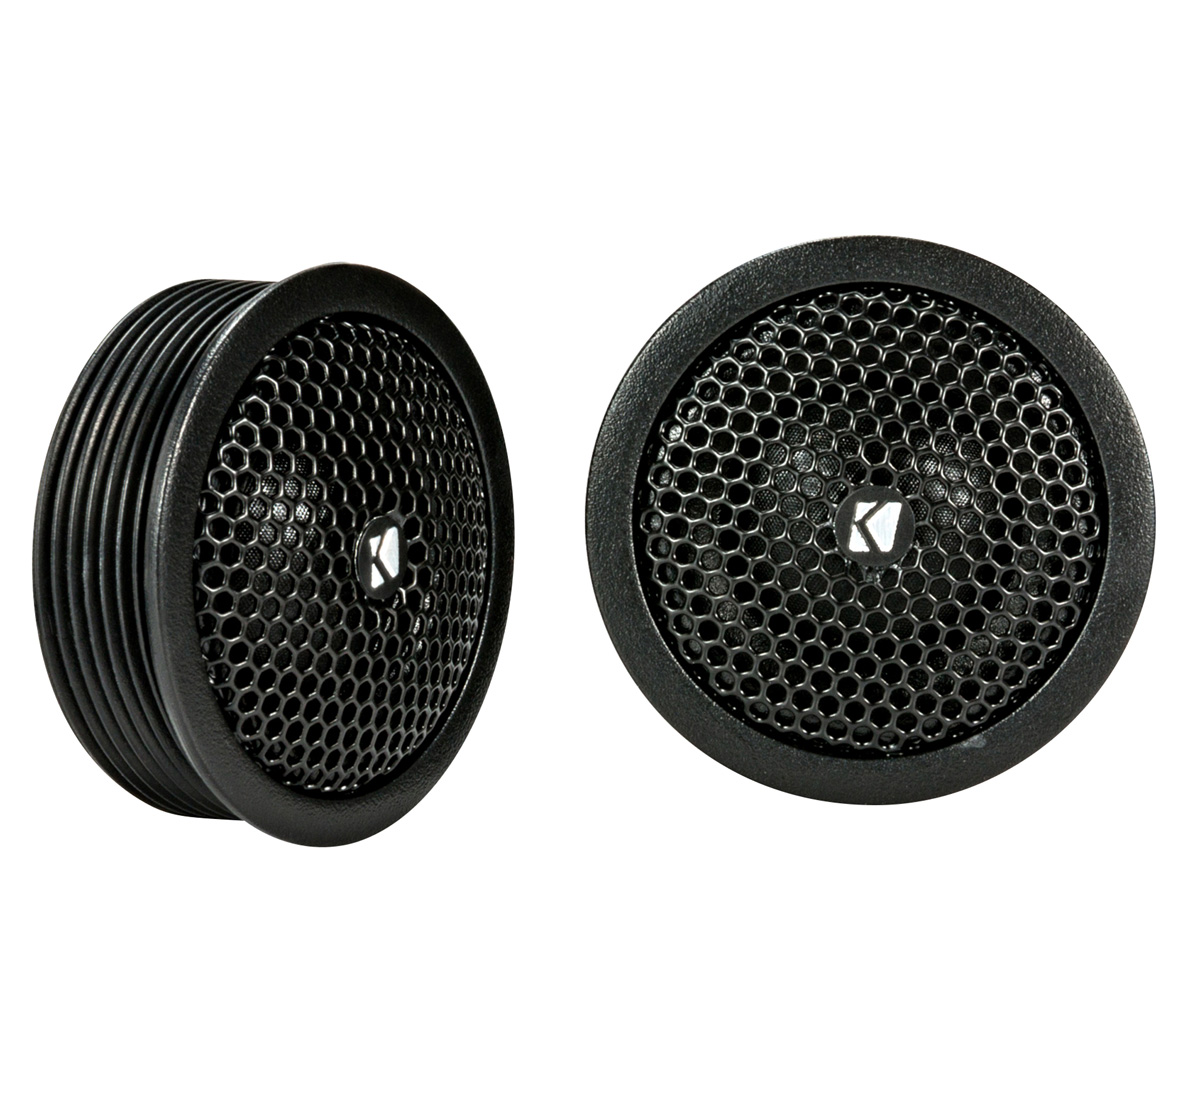 "KICKER 44KST2004 .75""(20mm) tweeters w/x-overs, 4ohm, RoHS Compliant"